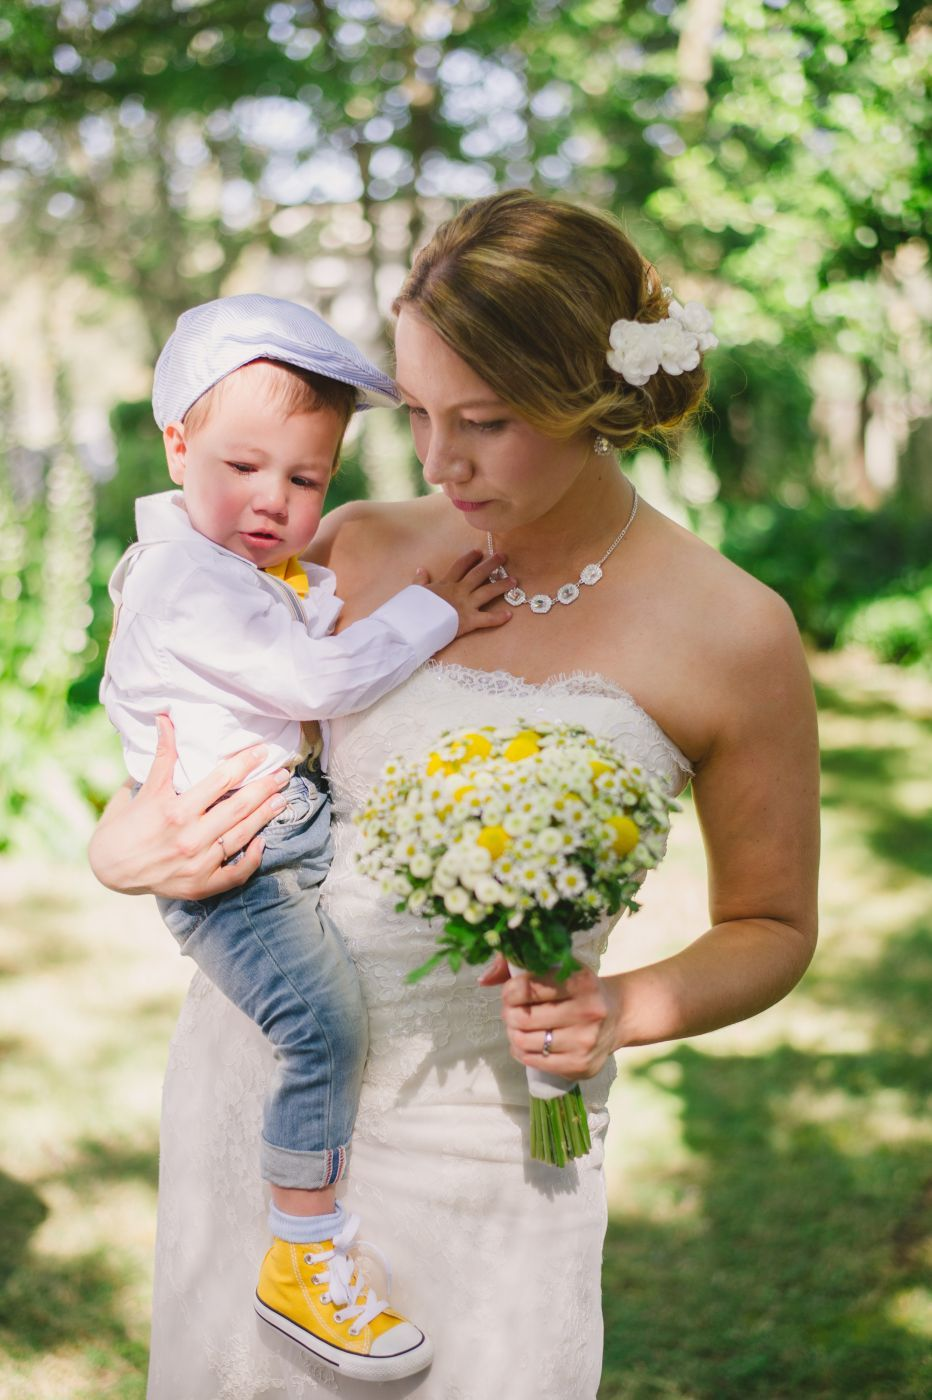 Bride with baby son dressed in clothes with yellow details ...